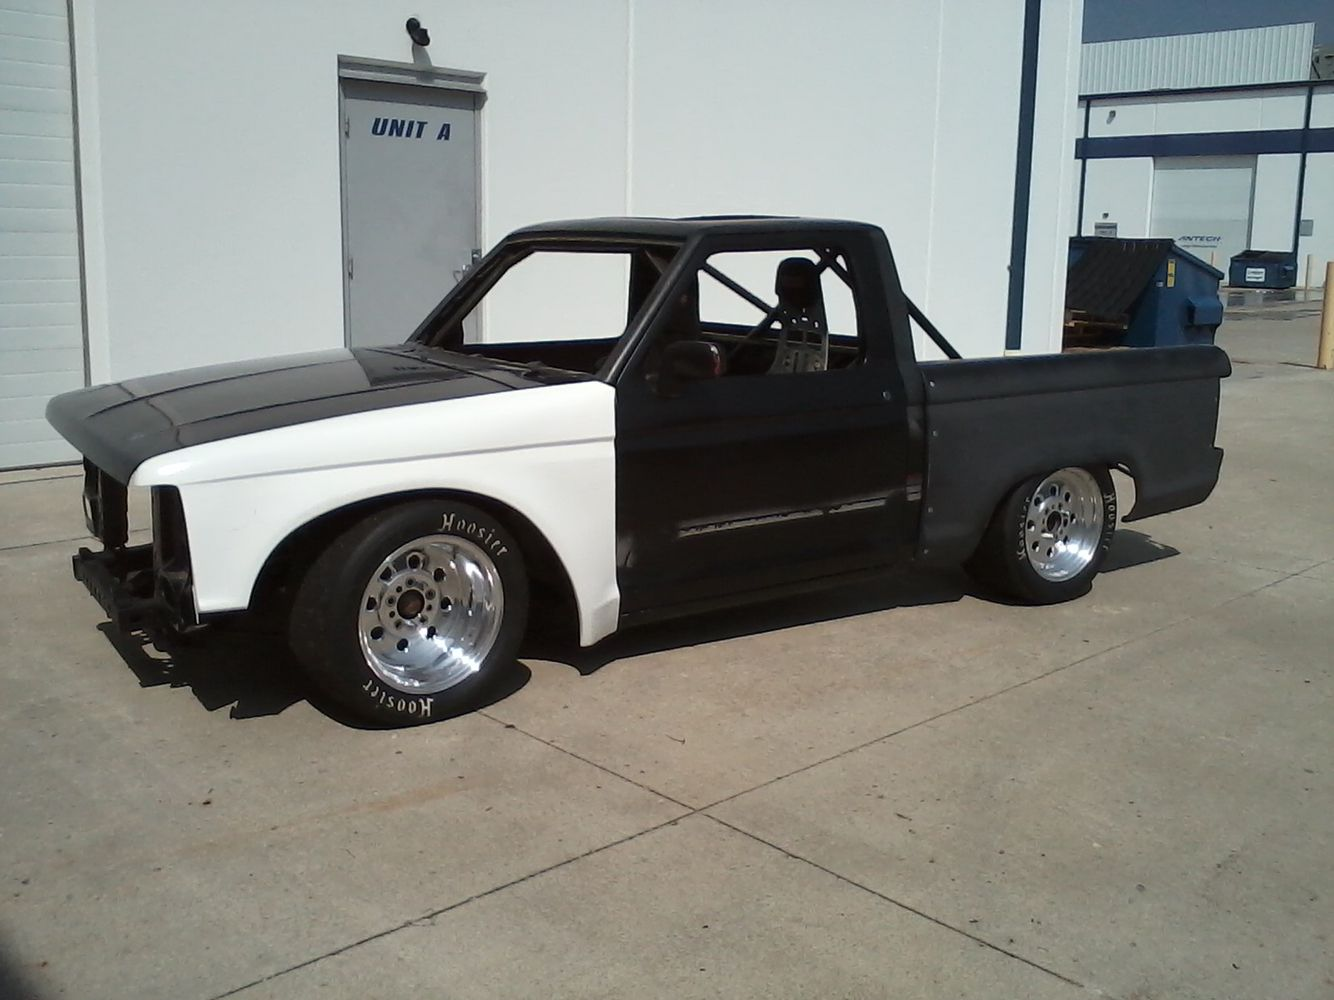 small resolution of gumby and my ford ranger being built for scca next year full tube chassis and sr20det powered